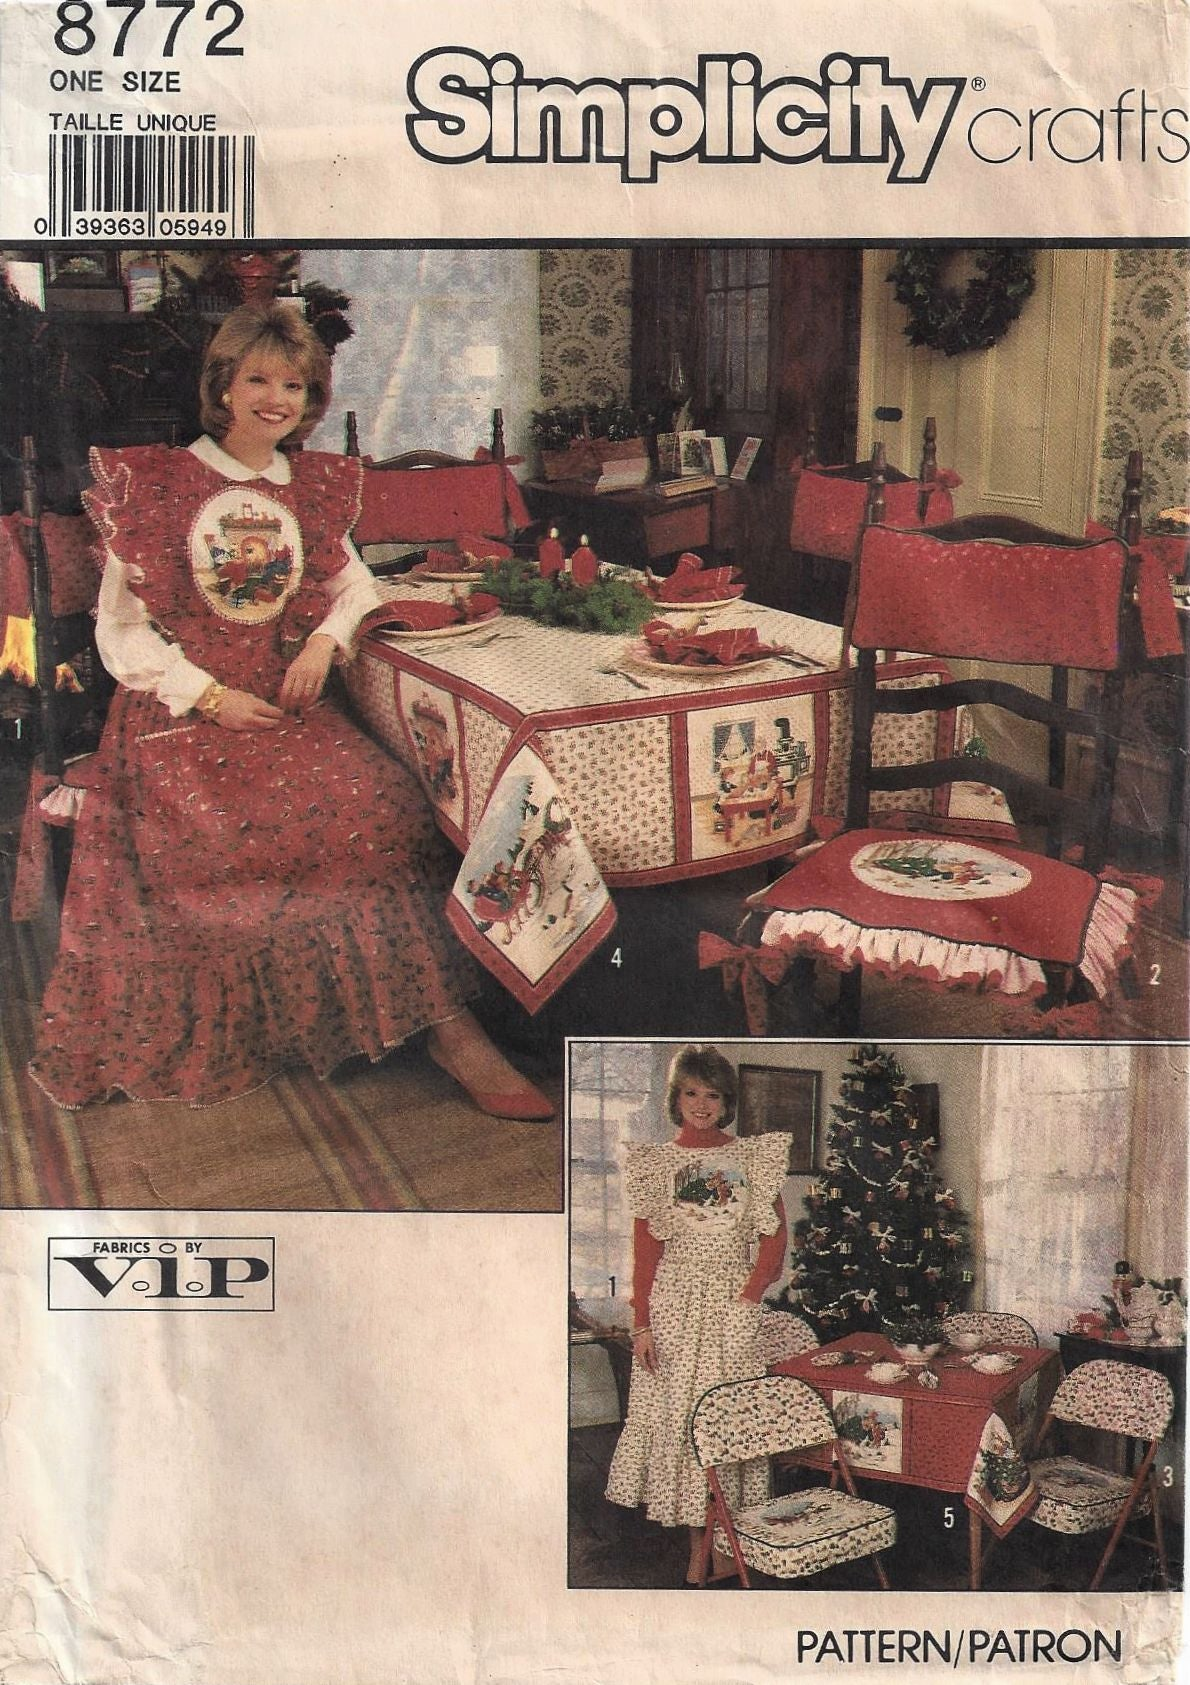 1988 Simplicity 8772 Christmas Apron, Chair Cushion & Cover, Tablecloths, Napkins